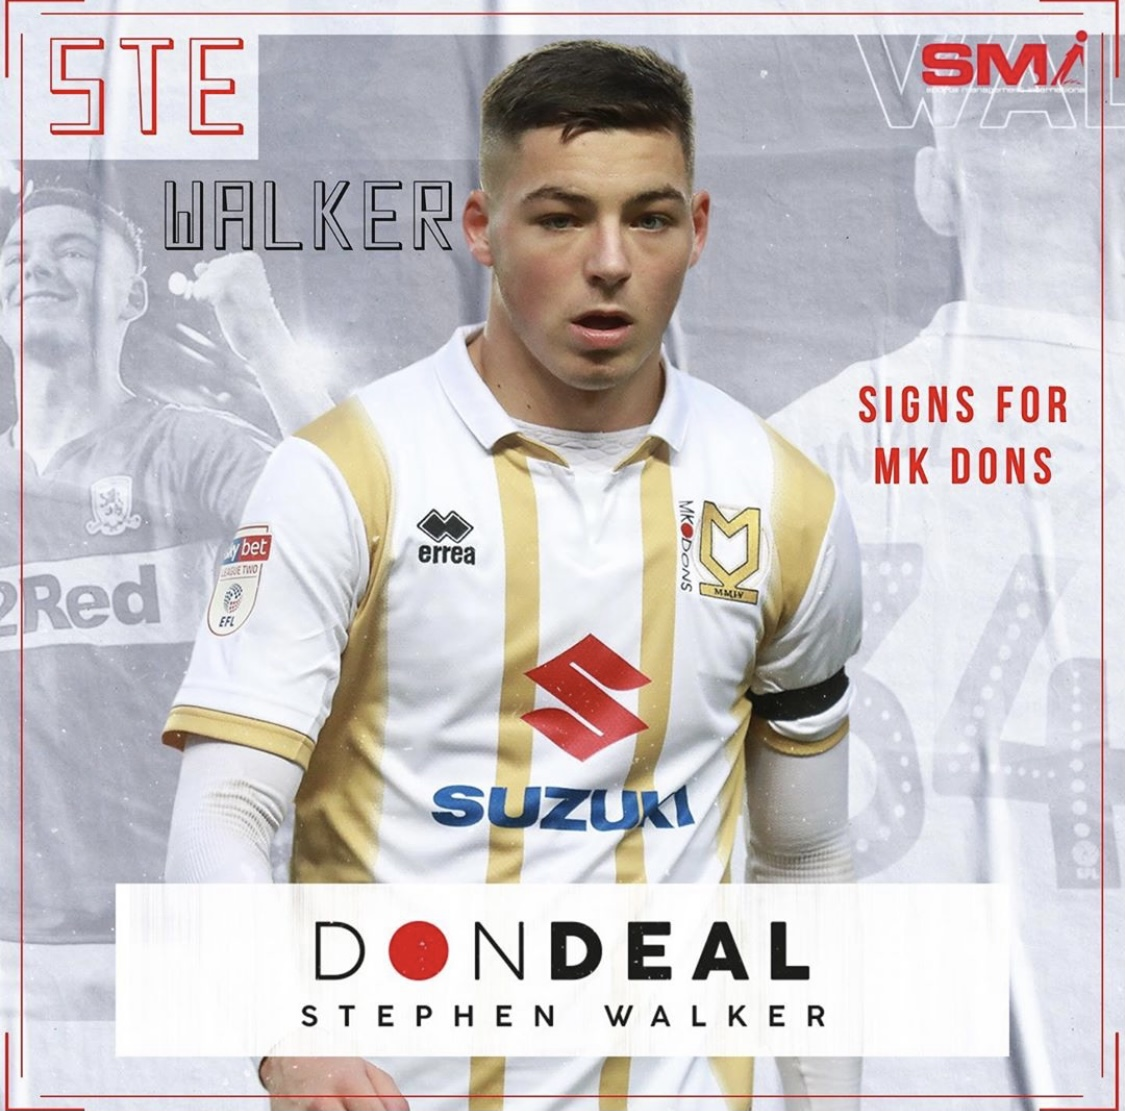 Ste Walker returns to MK Dons on loan